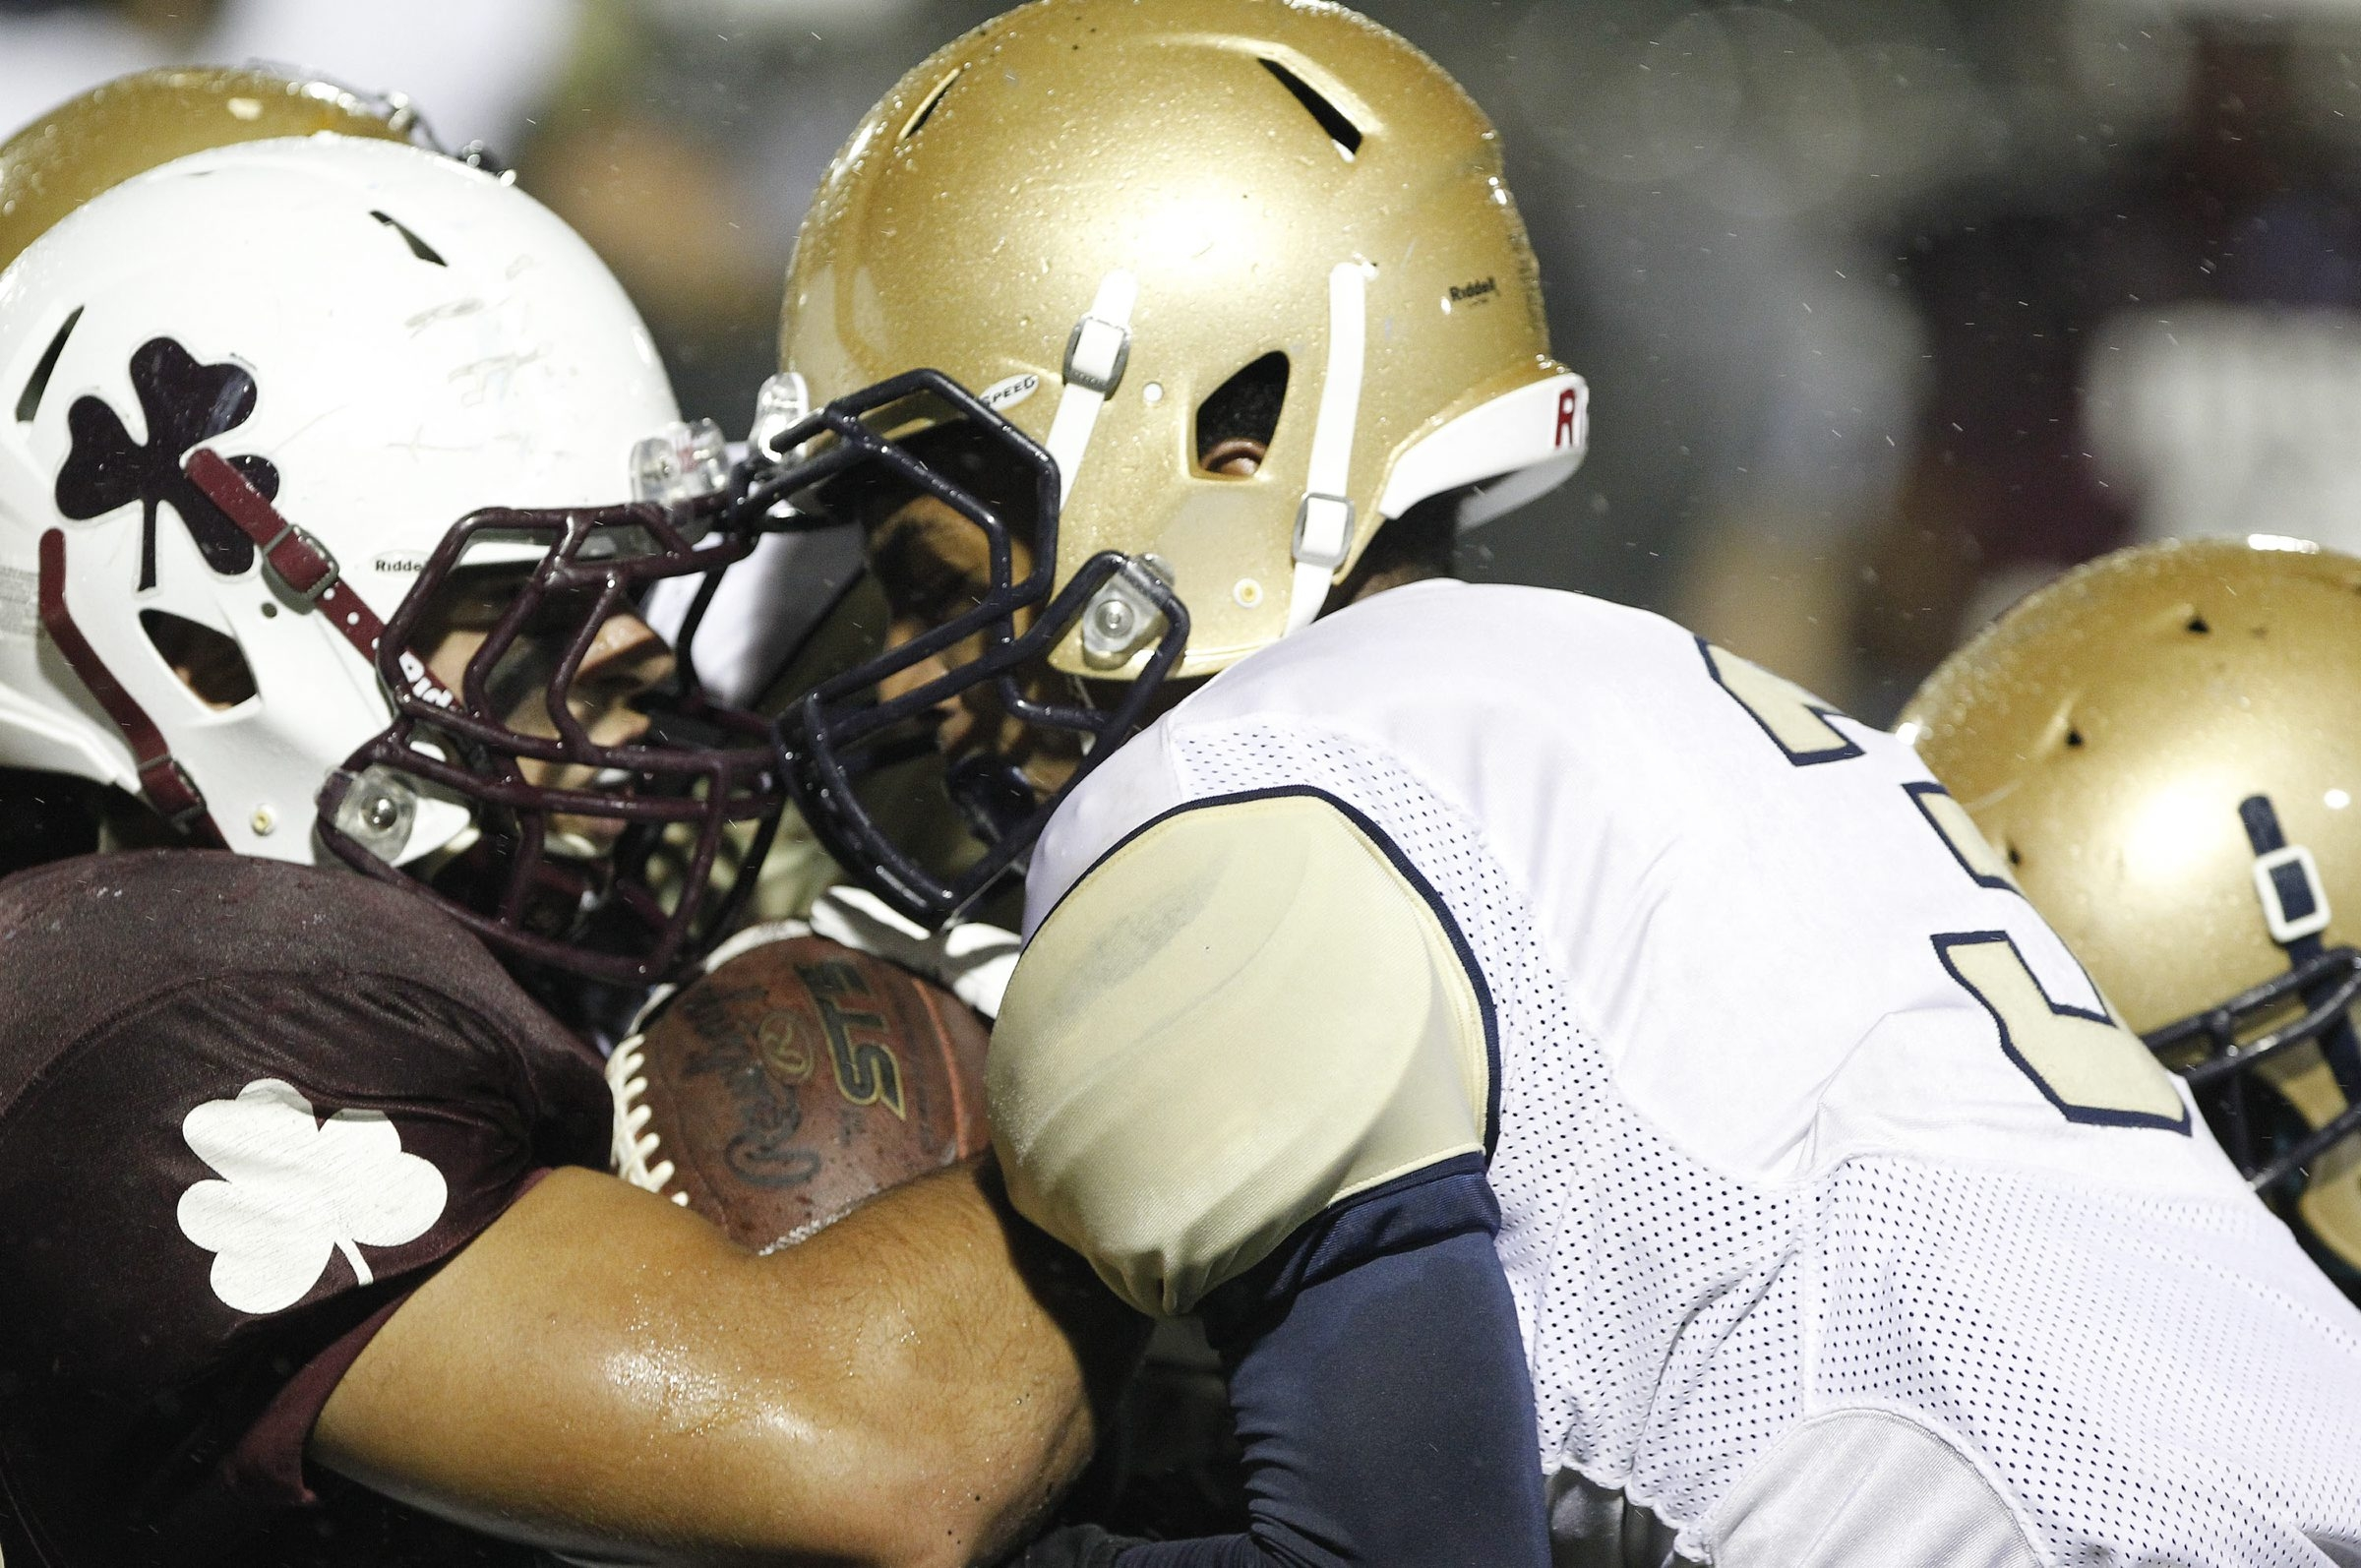 Canisius defender Mitchell Thomas goes face-to-face with Aquinas running back Luke Pietropaolo during Friday's game at Aquinas. More high school football photographs and scores on Page B6.